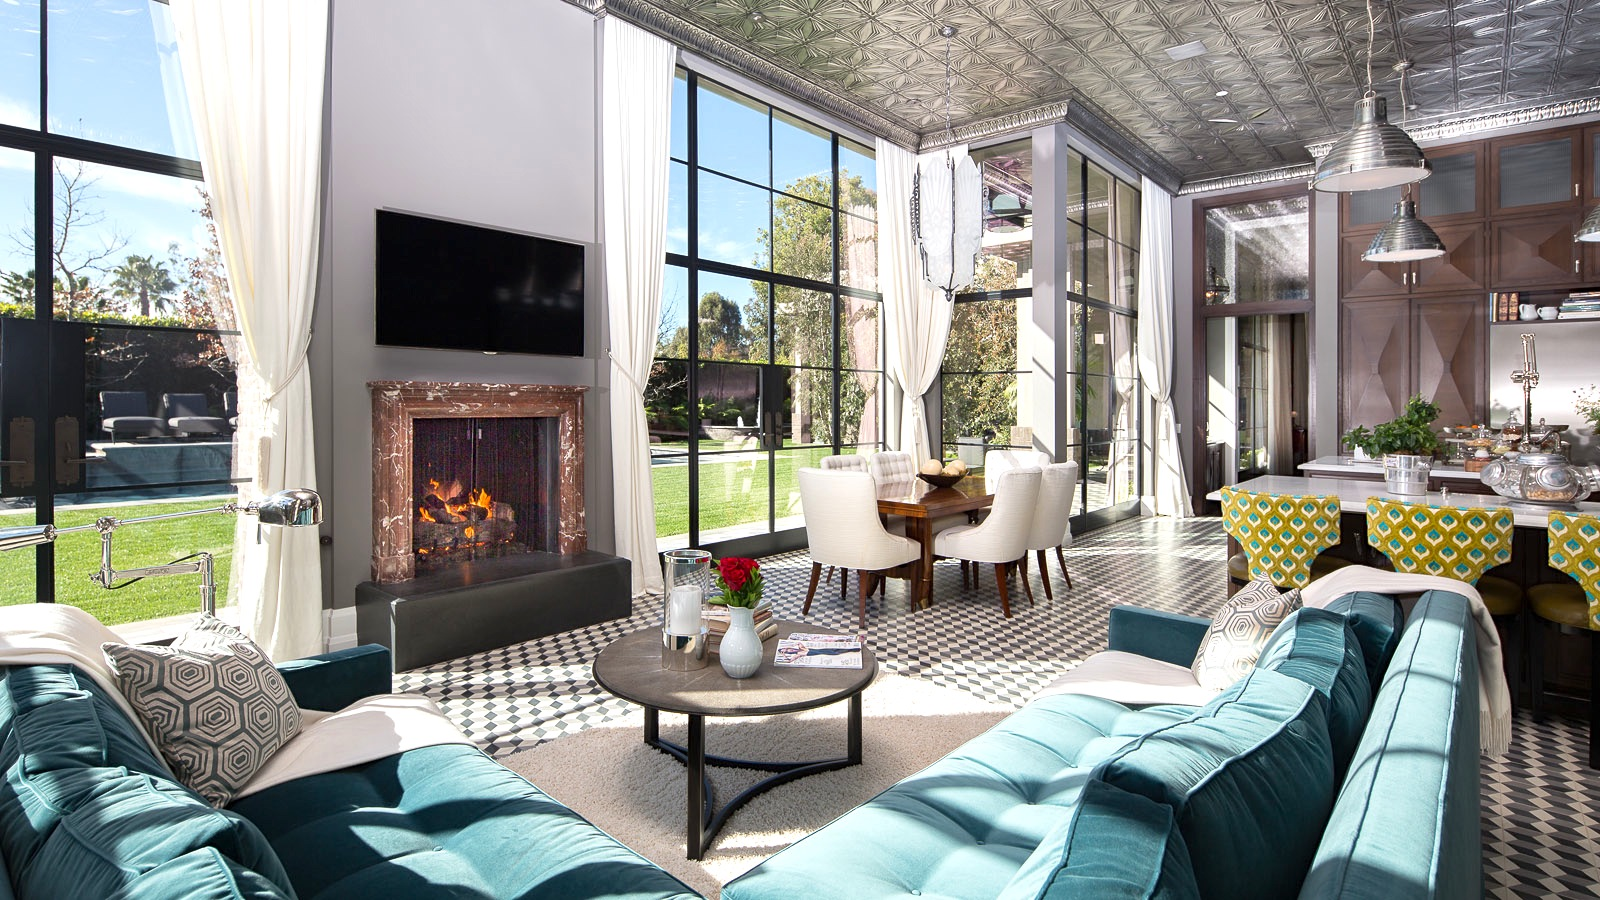 Beau $25 MILLION DOLLAR ART DECO STYLE ESTATE   SEE THIS HOUSE · Living Room ...